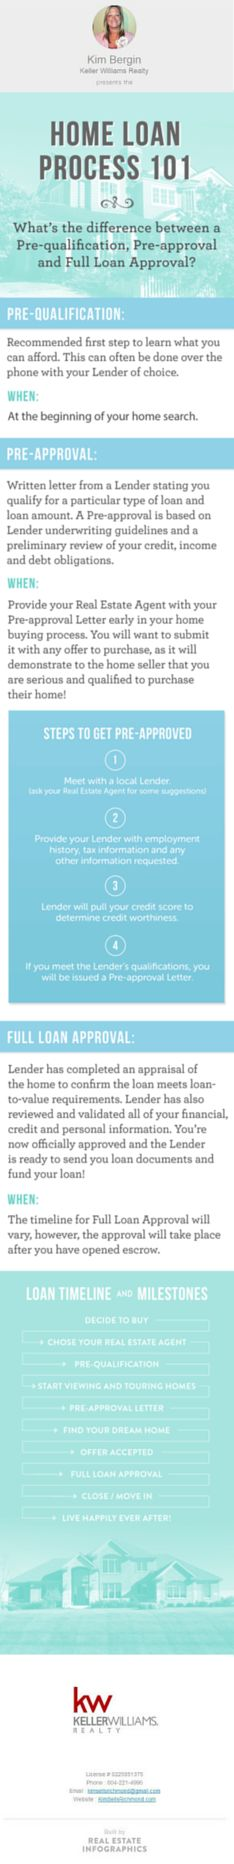 The #Loan process when buying a home or #investment property can be confusing if you have not purchased a home in the past. Here is some great information to review as you start out on your home buying journey! #kimsellsrichmond #realestate